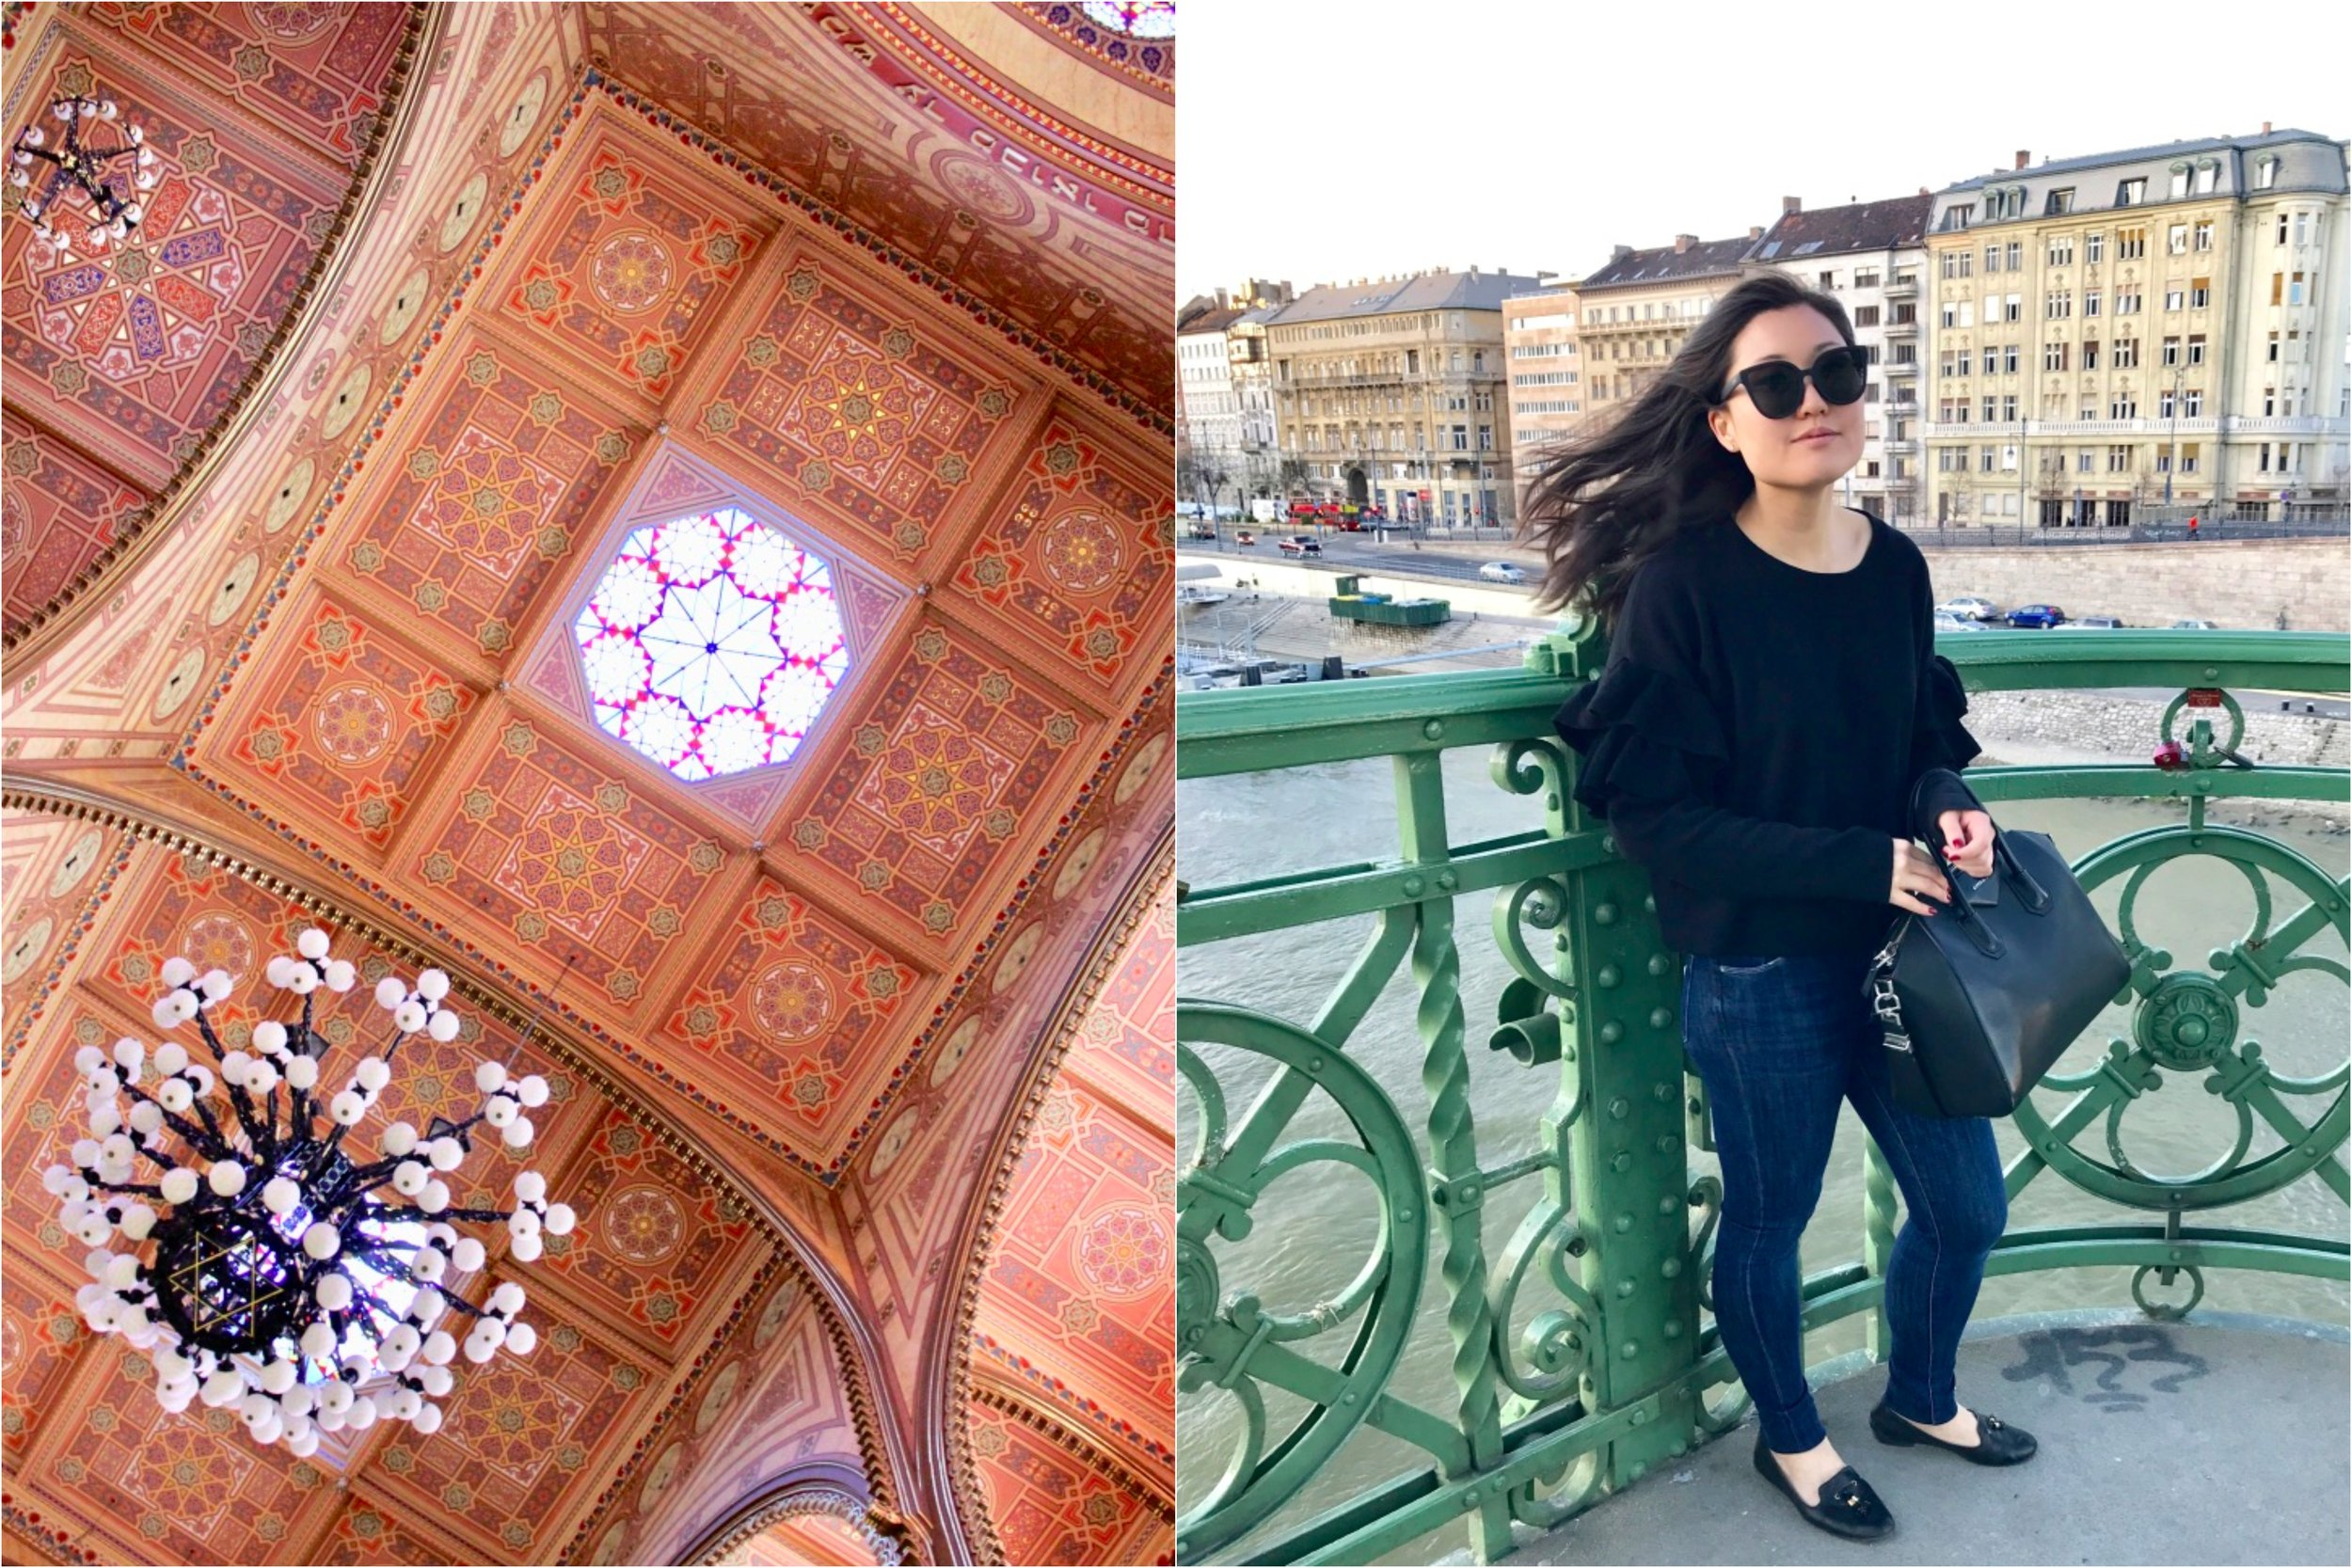 Collage - synagogue ceiling and bridge outfit.jpg